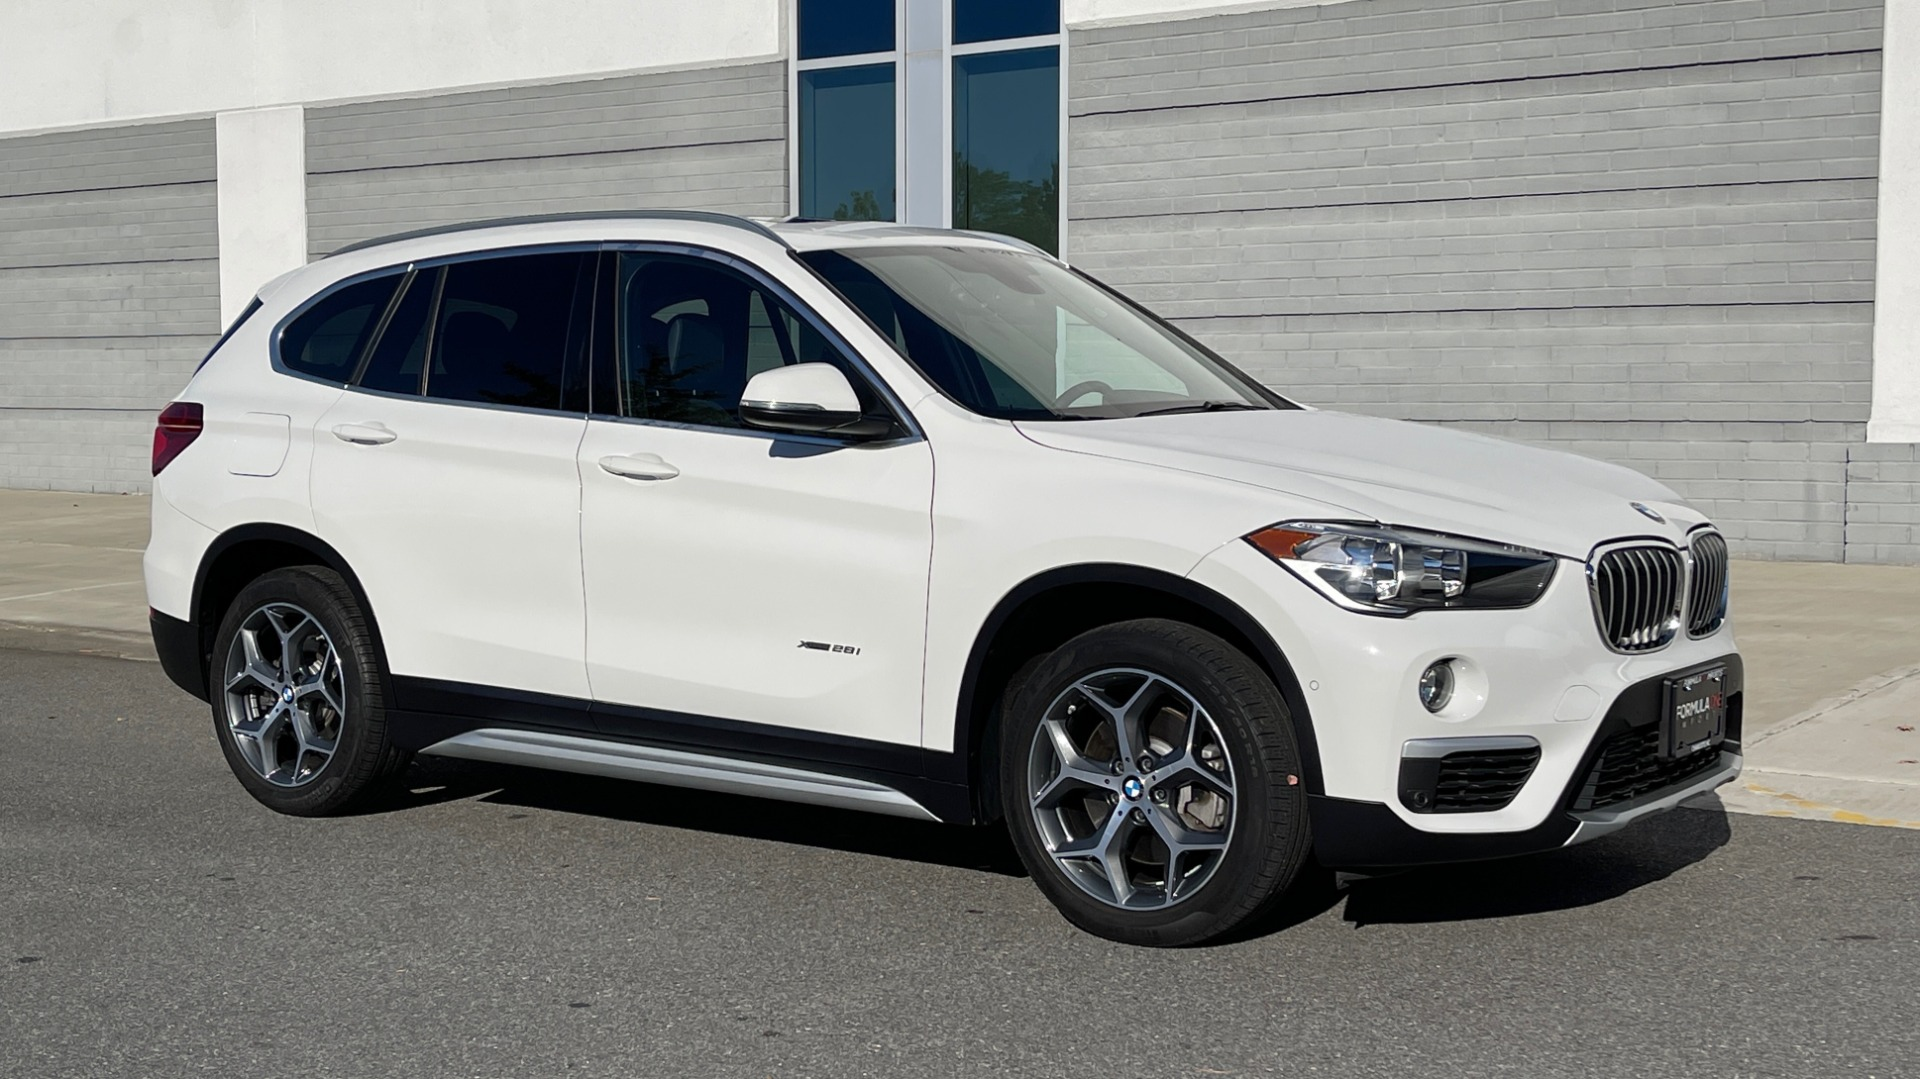 Used 2018 BMW X1 XDRIVE28I / CONV PKG / PANO-ROOF / PARK ASST / REARVIEW for sale $31,995 at Formula Imports in Charlotte NC 28227 5